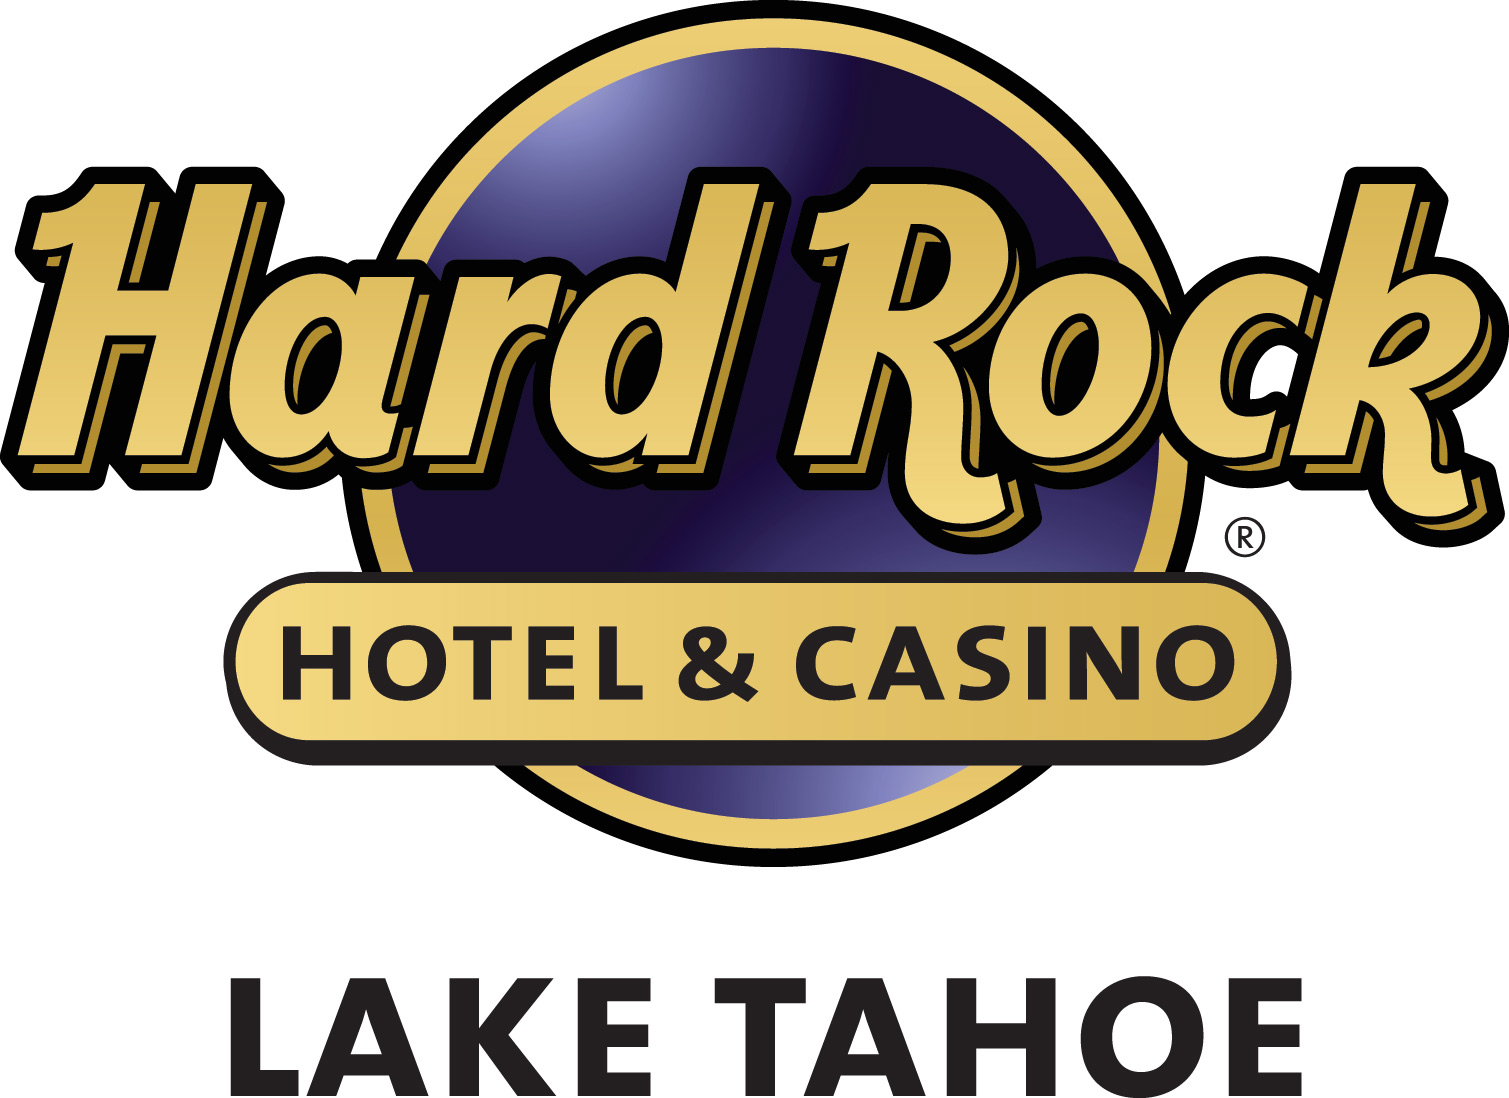 Hard Rock Cafe March Madness